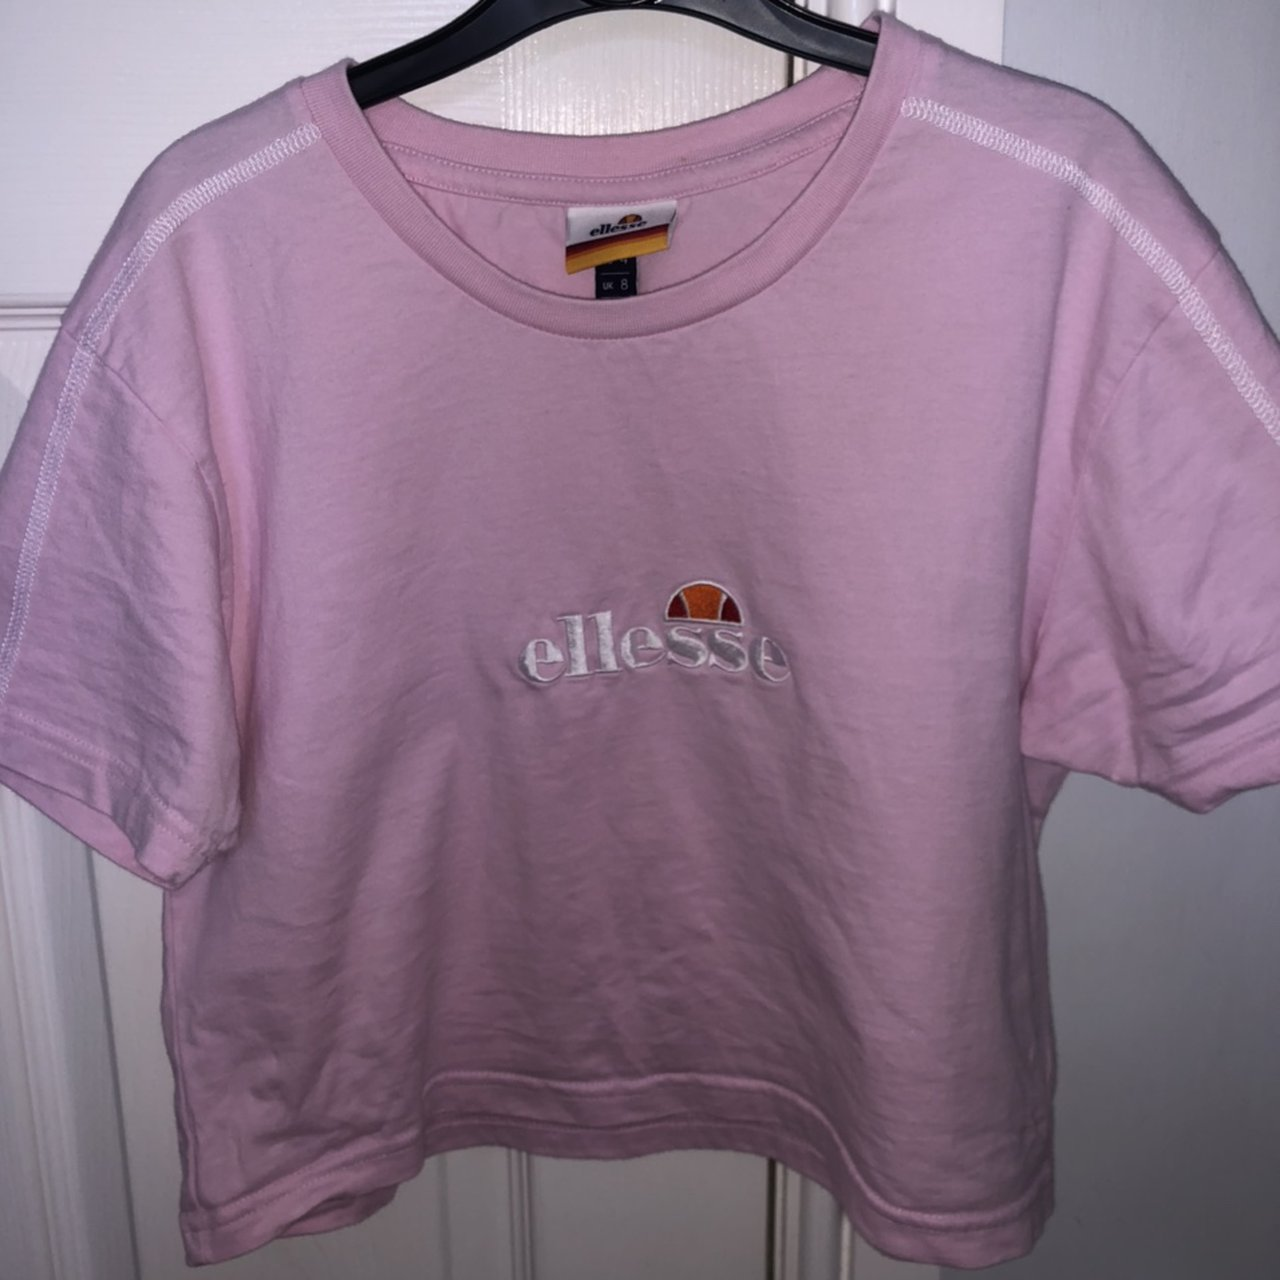 ellesse cropped baby pink t shirt from jd sports depop ellesse cropped baby pink t shirt from